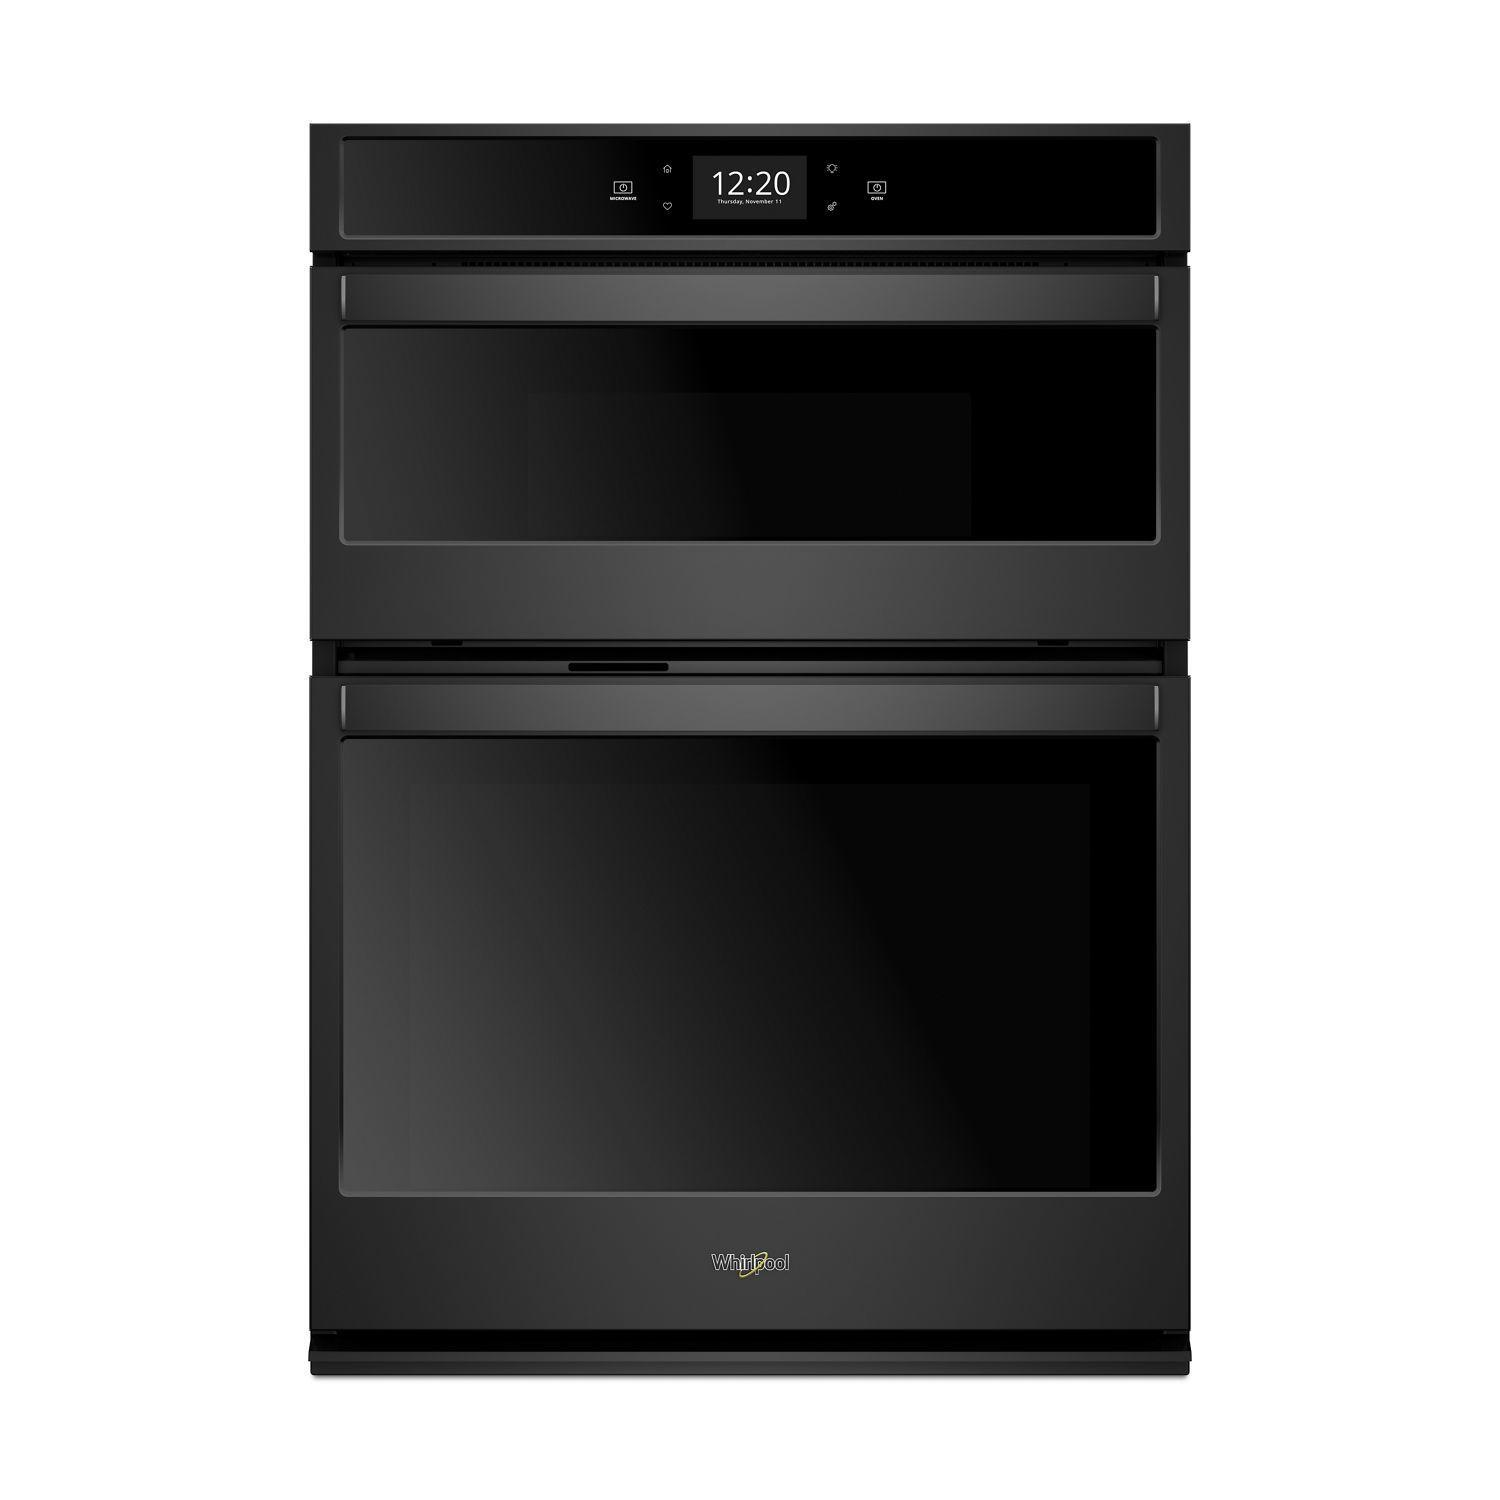 Whirlpool6.4 Cu. Ft. Smart Combination Wall Oven With Touchscreen Black